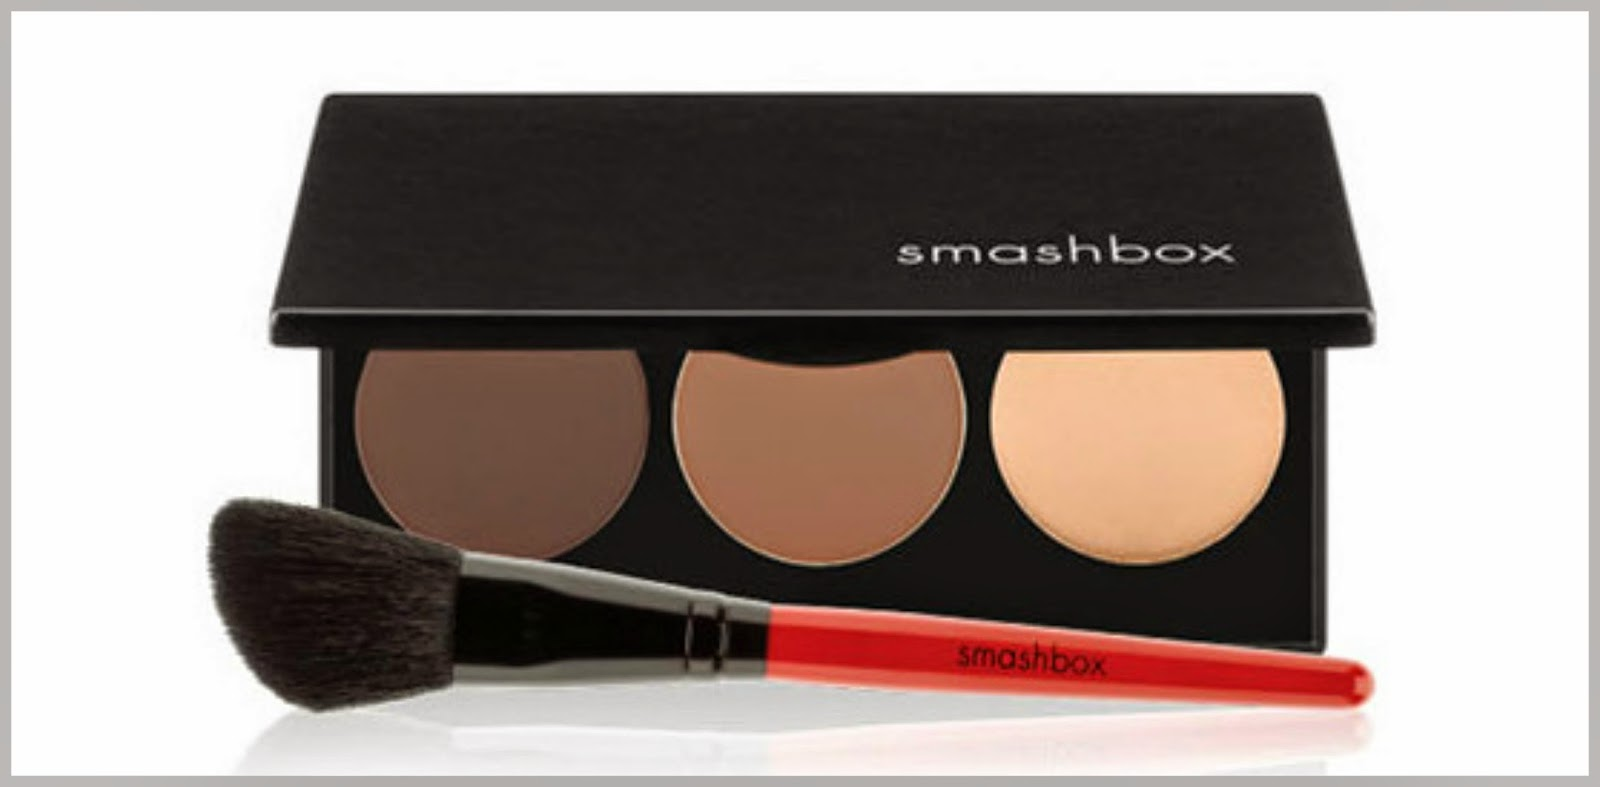 NEW! Smashbox Step-By-Step Contour Kit